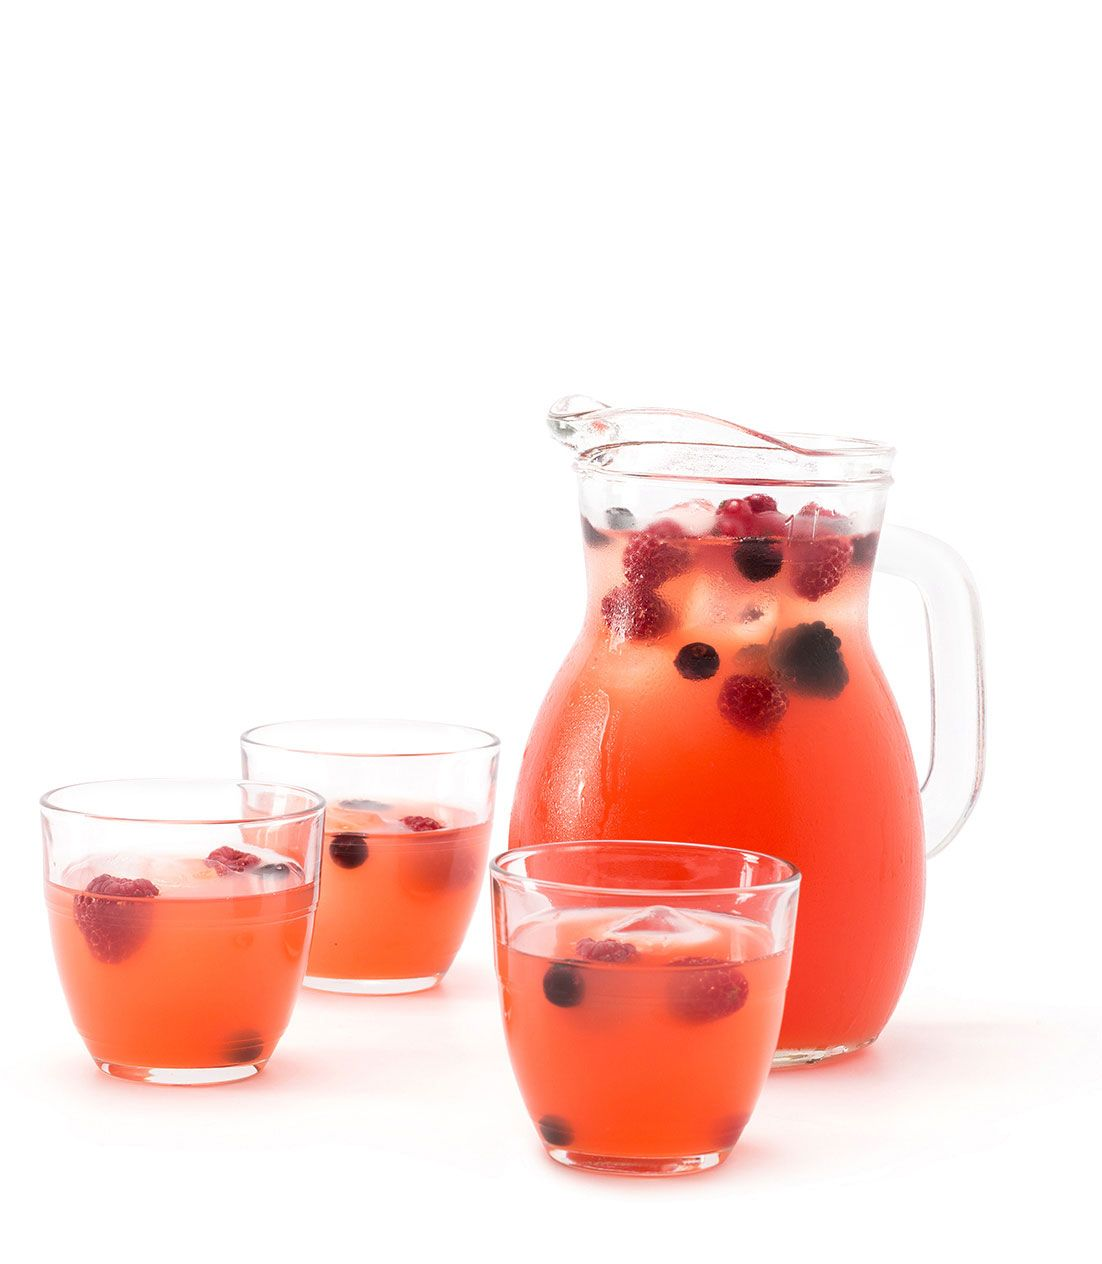 P No Time To Prepare We Have The Solution Passoa Sangria Is A Great Idea For An Aperitif And Is Easy To Make And Share All You Nee Sangria Aperitif Fruity